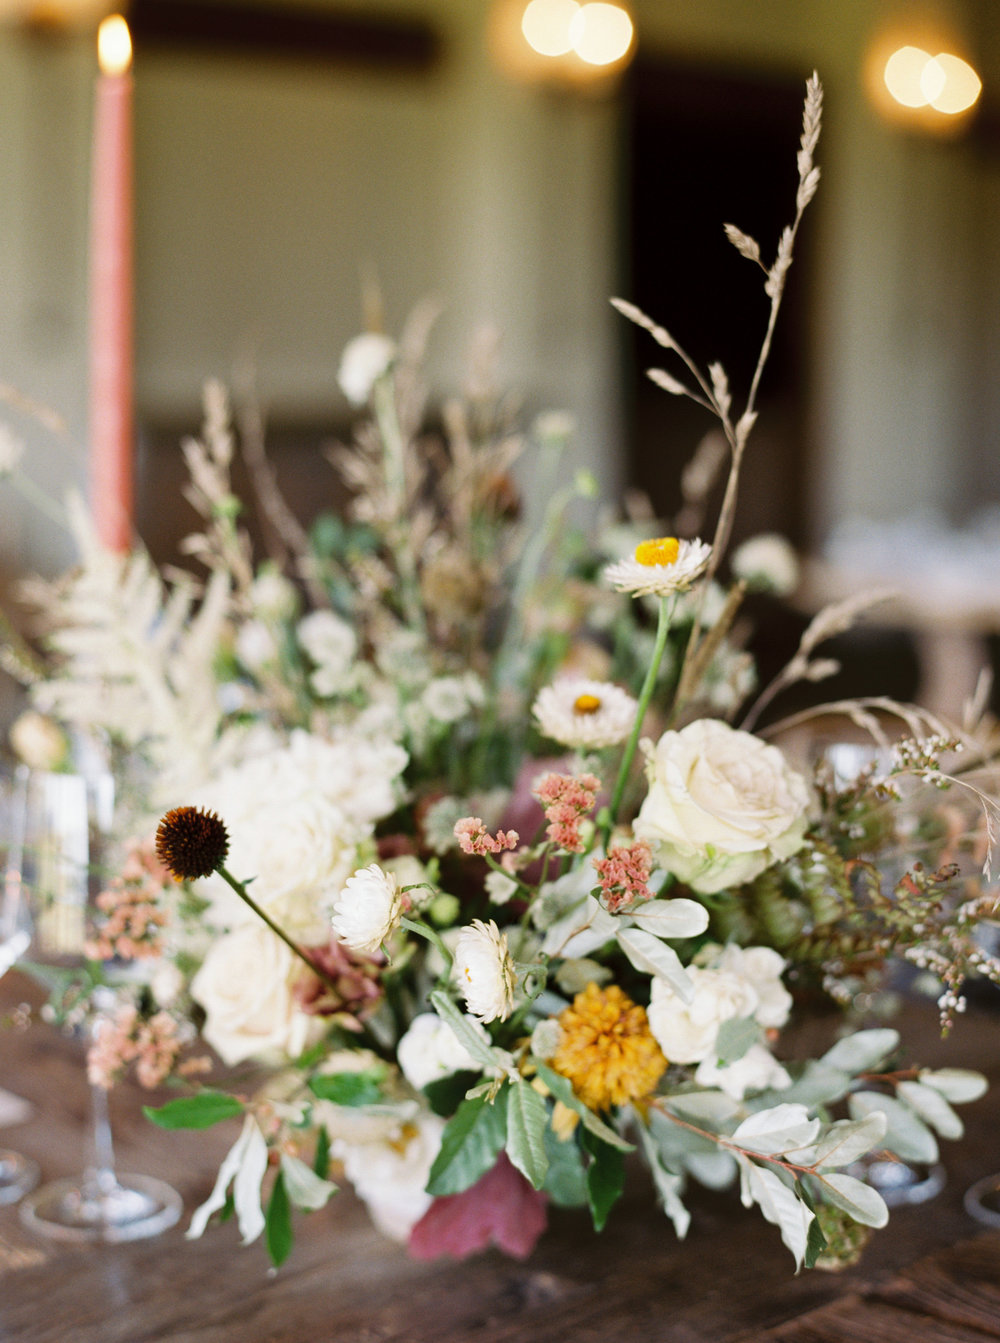 Early Mountain Vineyard Wedding - Wild Green Yonder Flowers